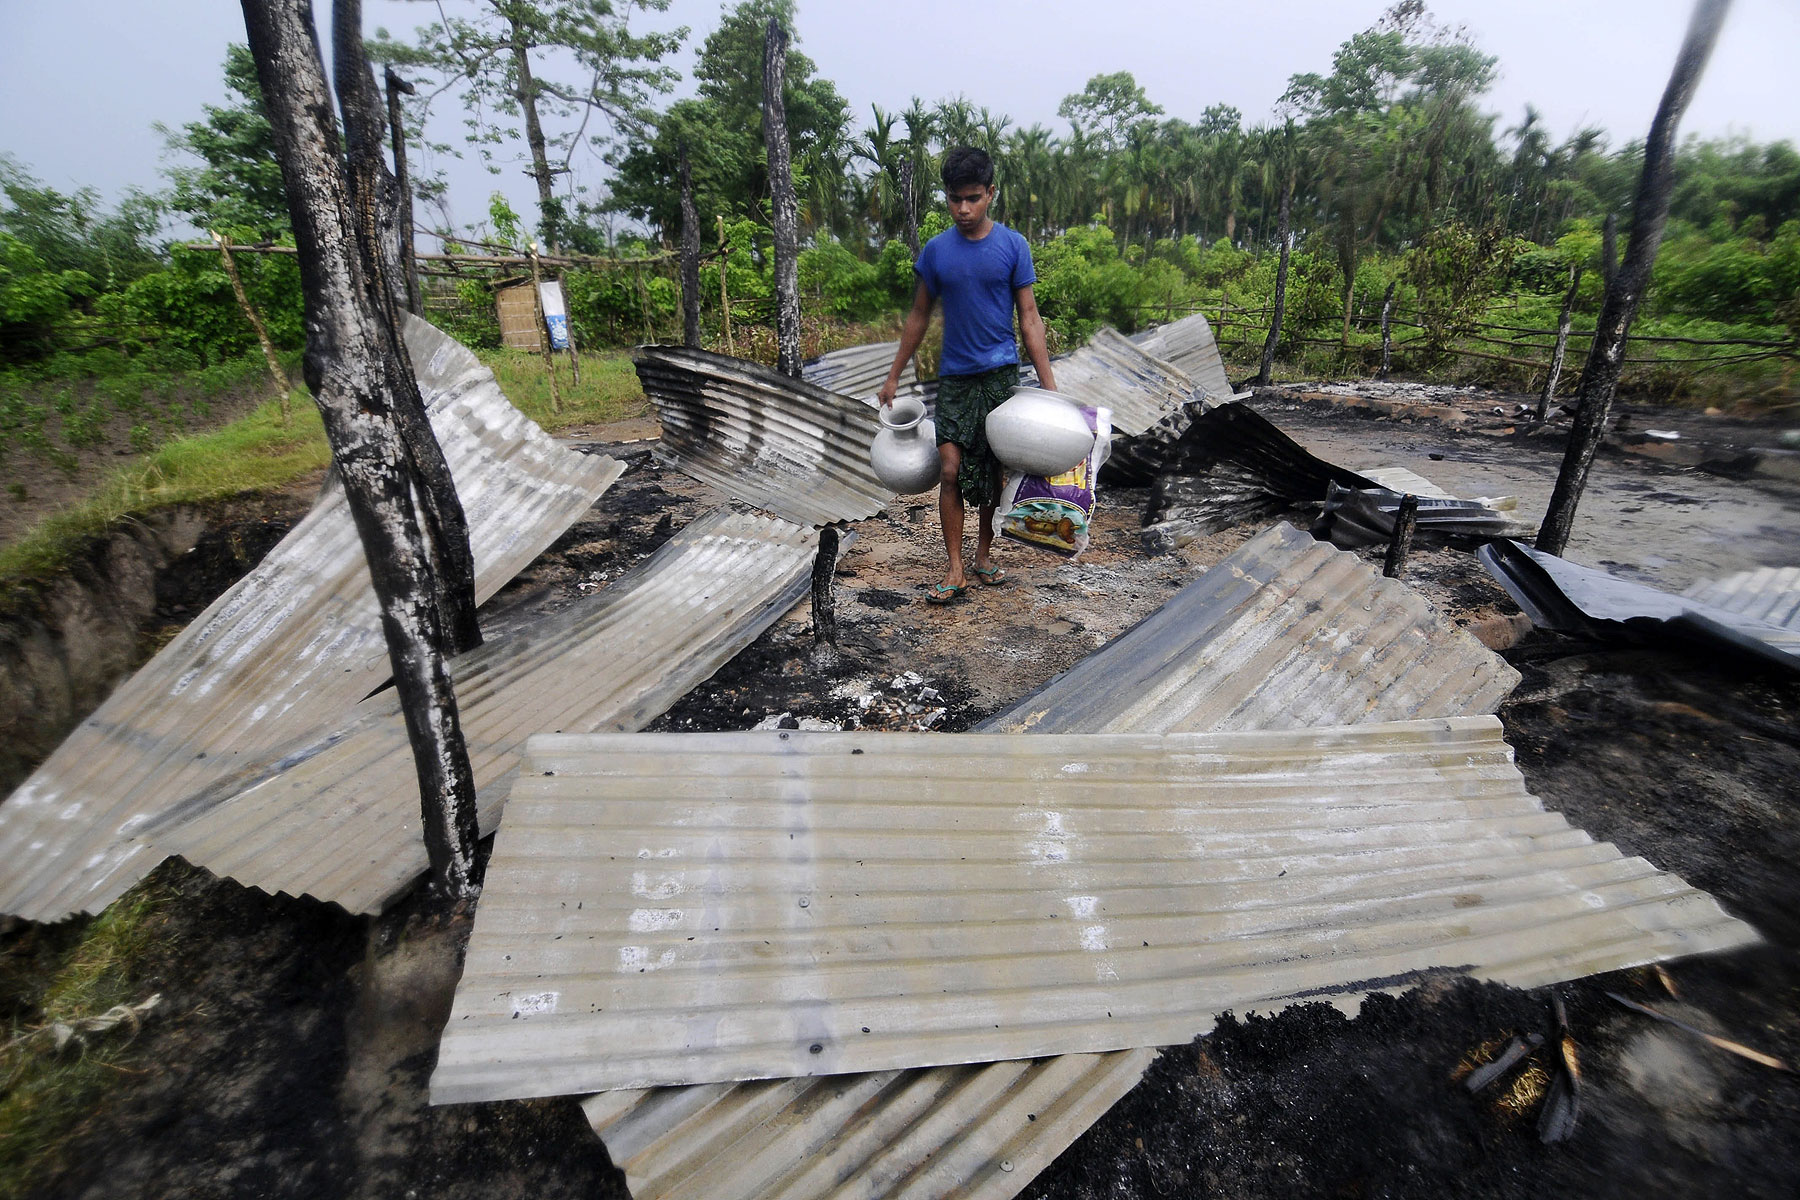 An Indian resident salvages valuables in the remains of his house in the village of Khagrabari, some 200 km west of Guwahati on May 3, 2014, after it was attacked by tribal separatists in India's remote northeastern state of Assam